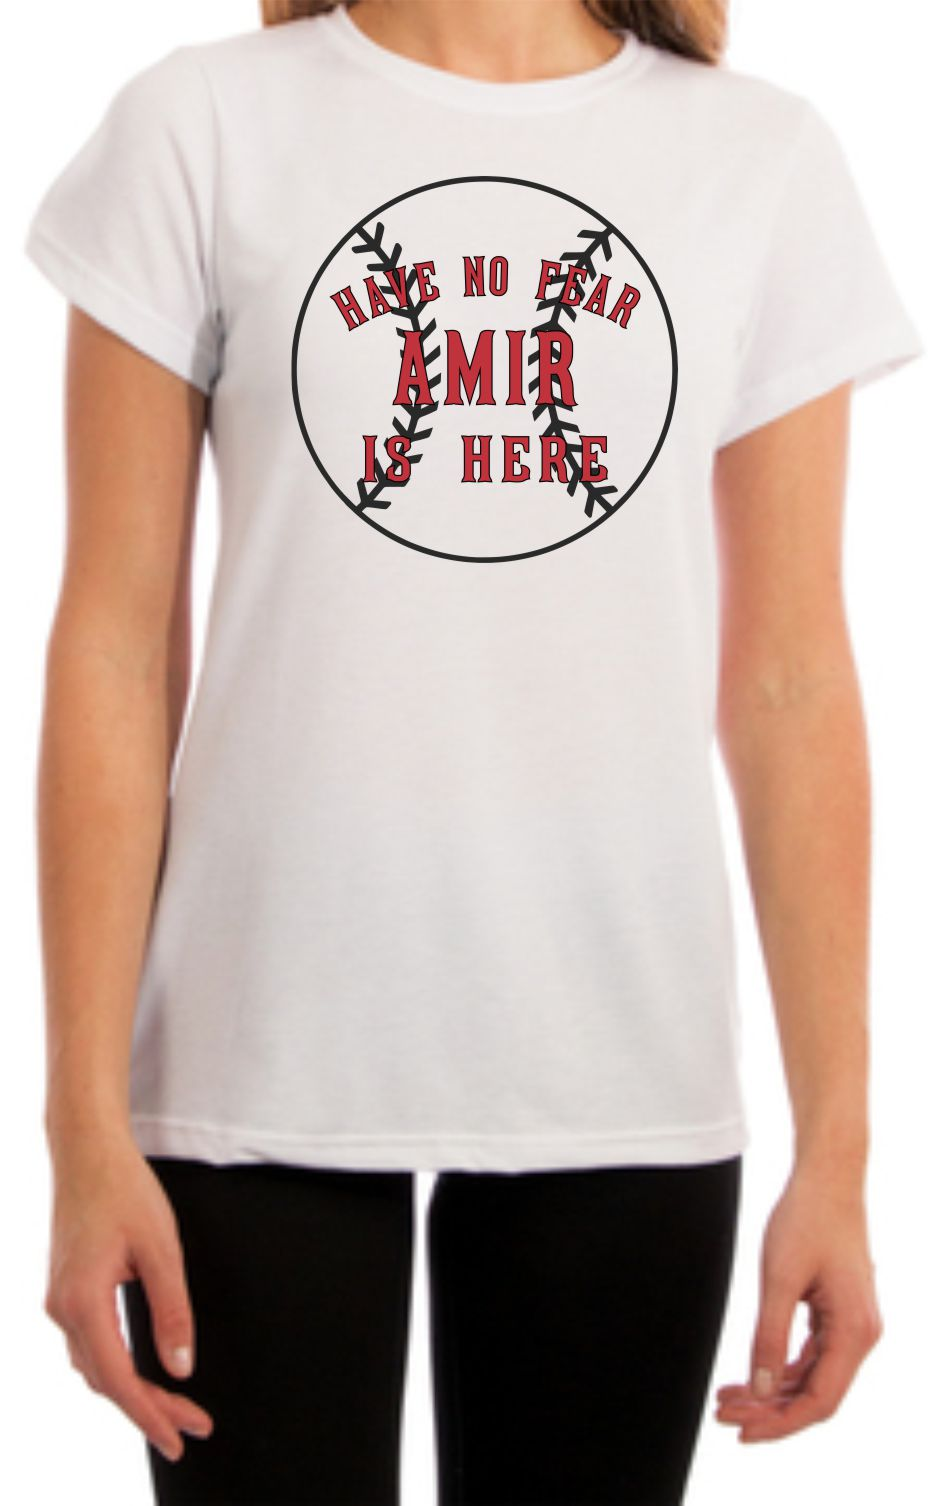 Have No Fear Amir is Here Shirt Womens